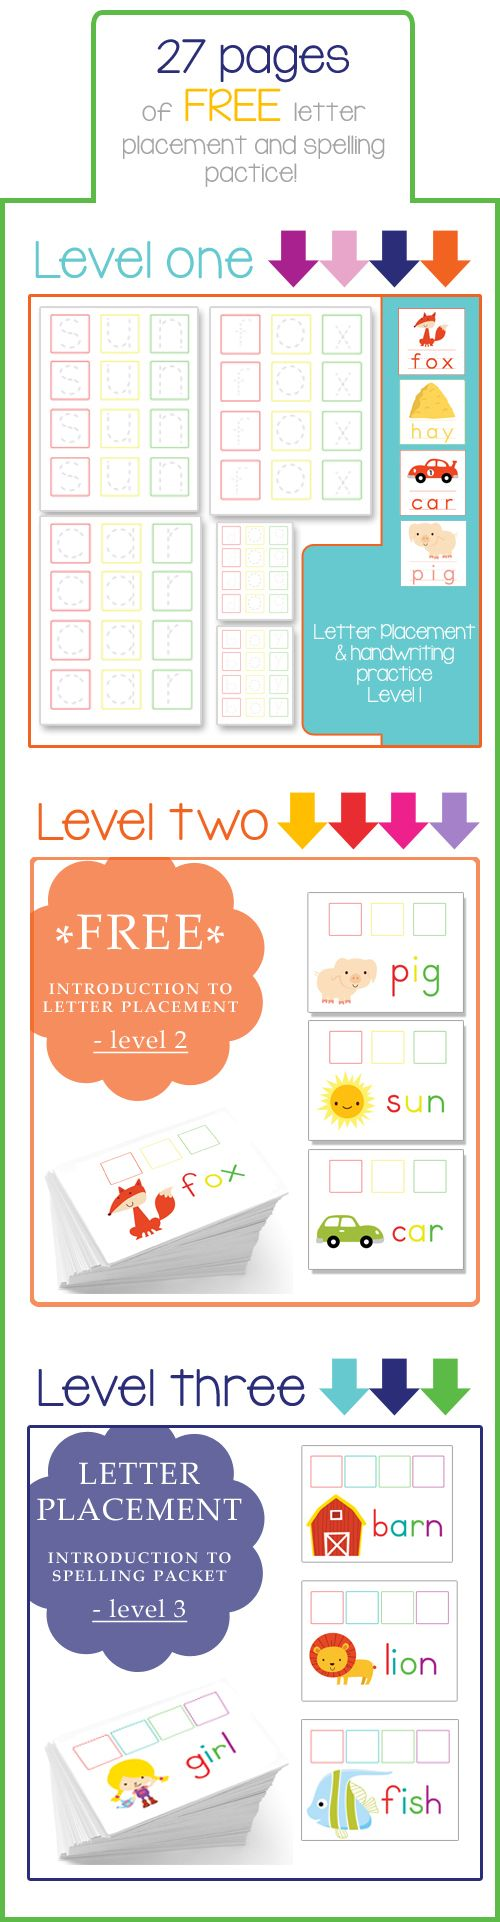 Teaching Letter Placement–Free Printable(s) !!! I created these 3 and 4 letter word pages to help him. There are three levels (27 pages total!)